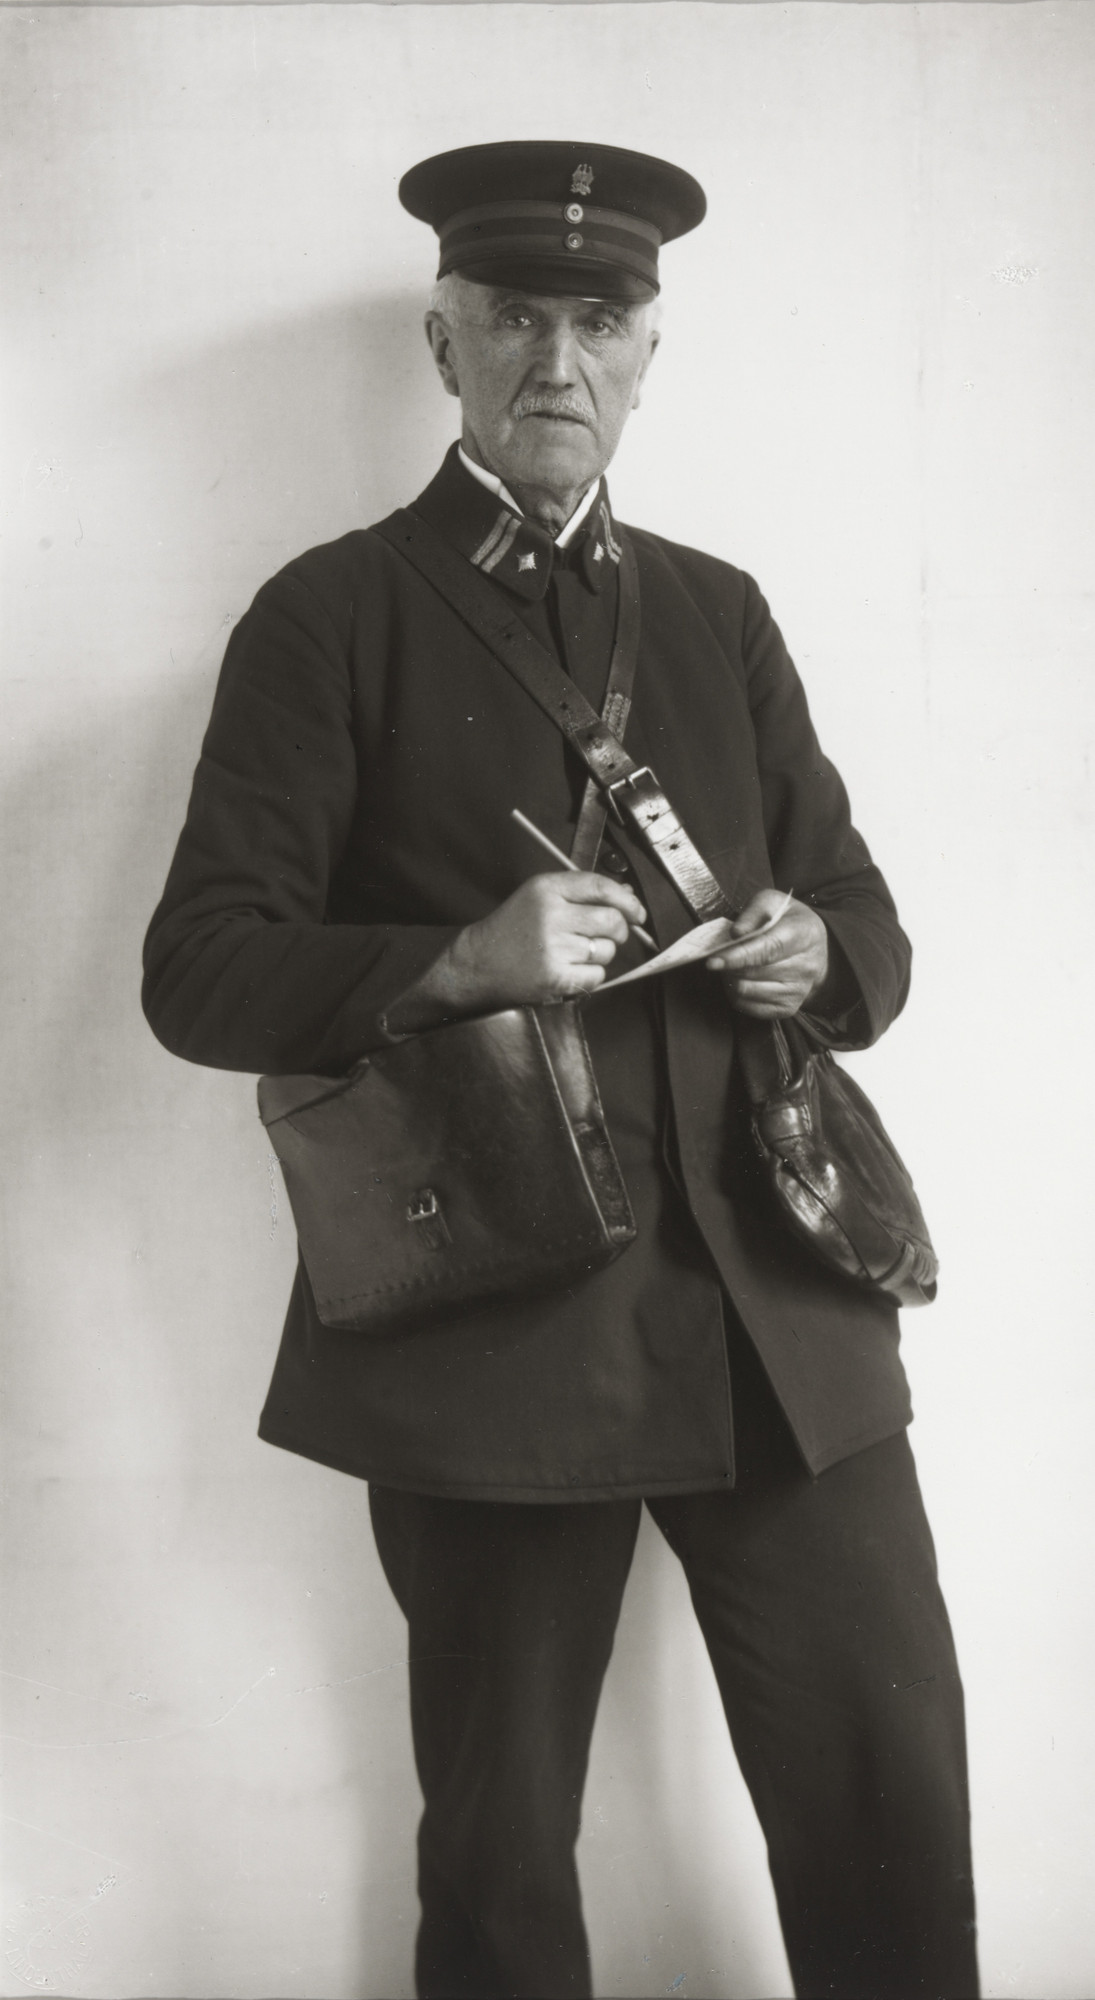 August Sander. Registered Letter Mailman. 1925